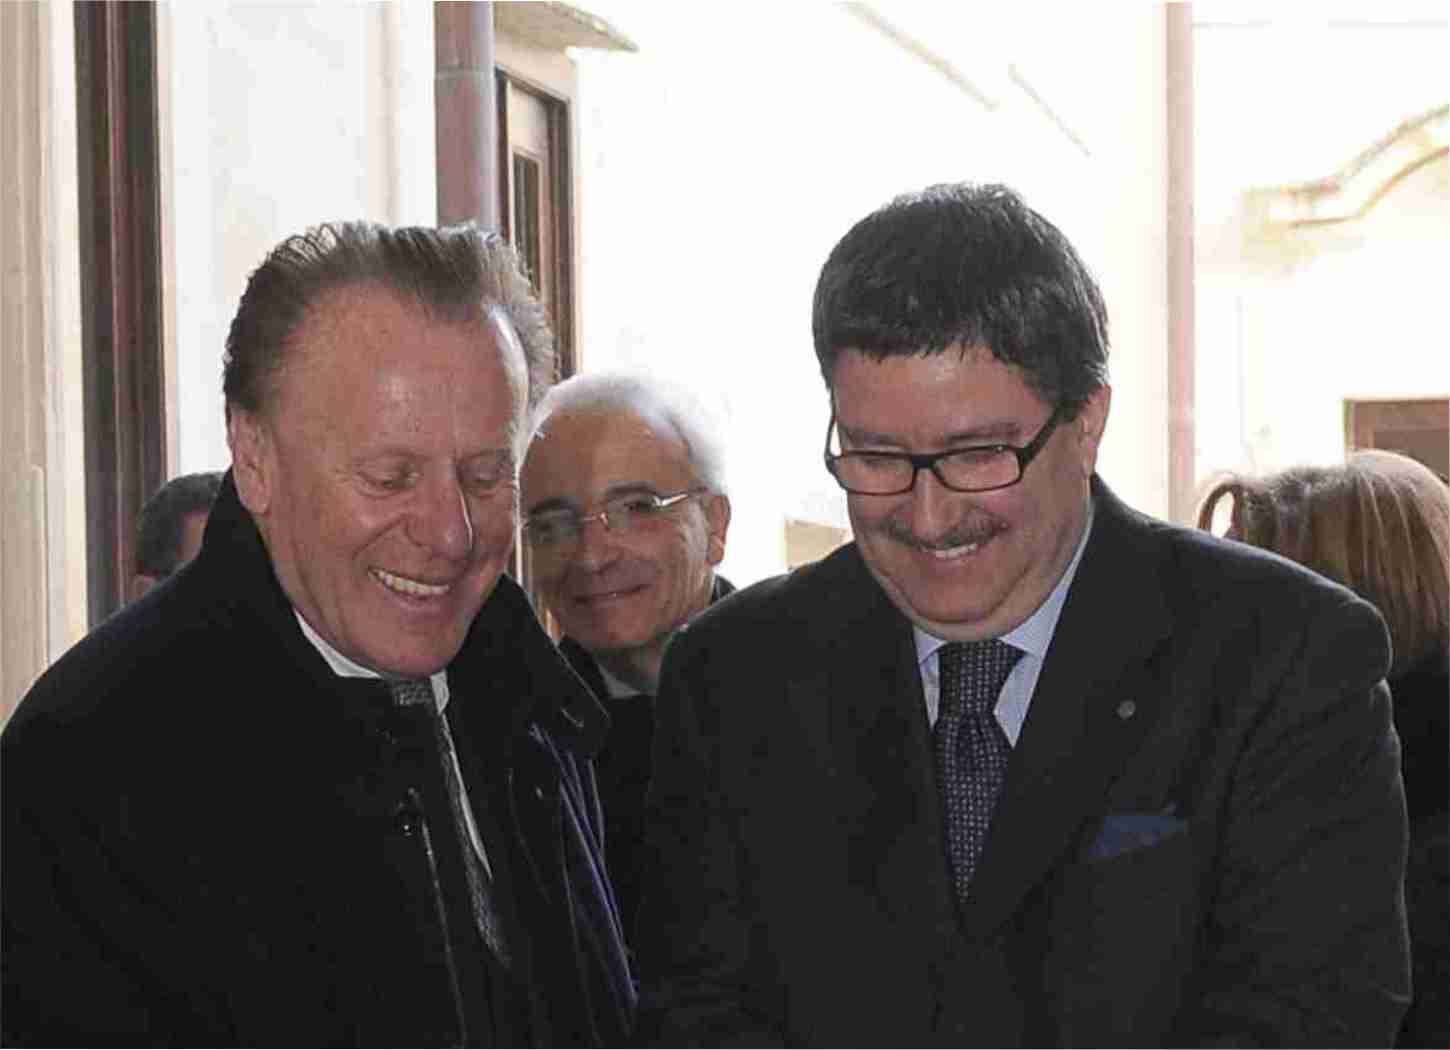 uploaded/MARIO/dardanello tortorelli.jpg